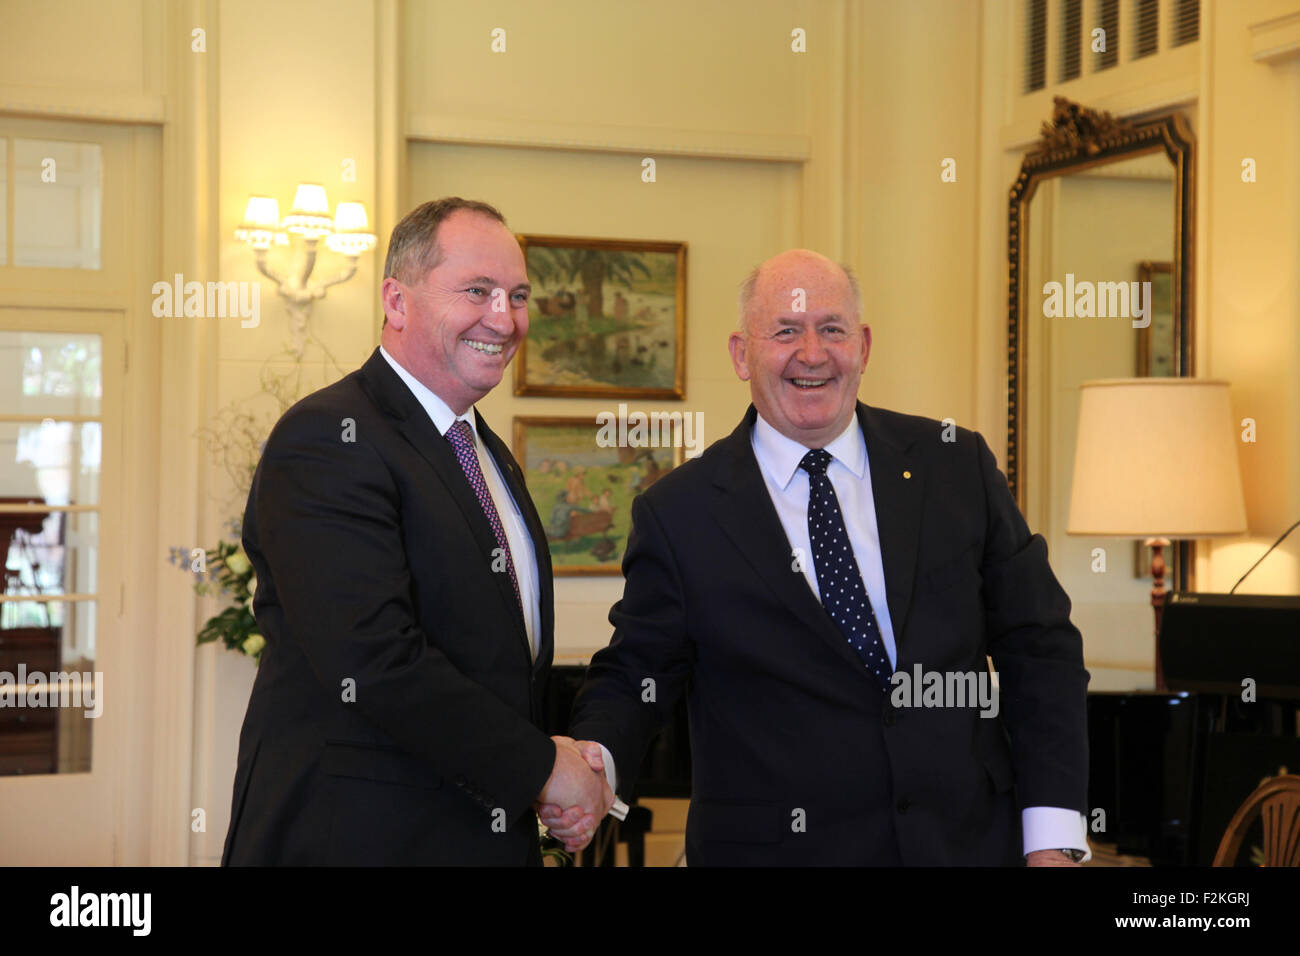 Canberra, Australia. 21st Sep, 2015. Barnaby Joyce (L) is sworn in as Minister for Agriculture and Water by Governor - Stock Image